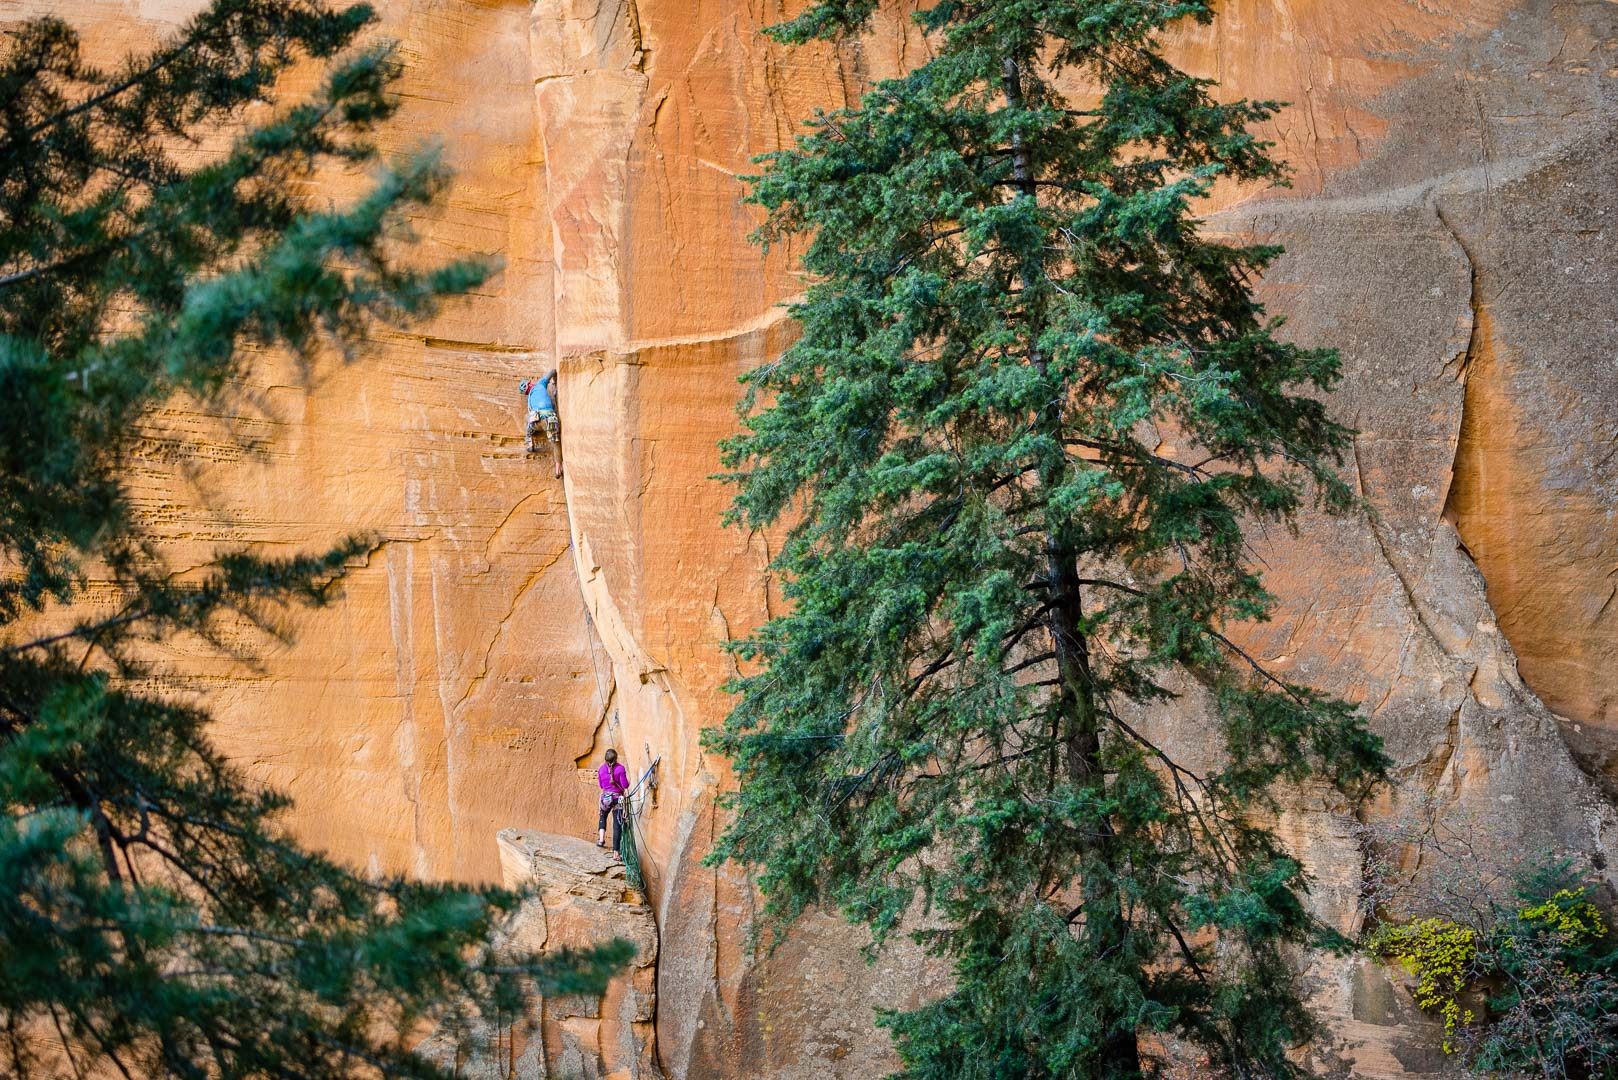 Jeff Snyder and Ashley Maryn on Forget Jaws | Oak Creek Canyon, Az